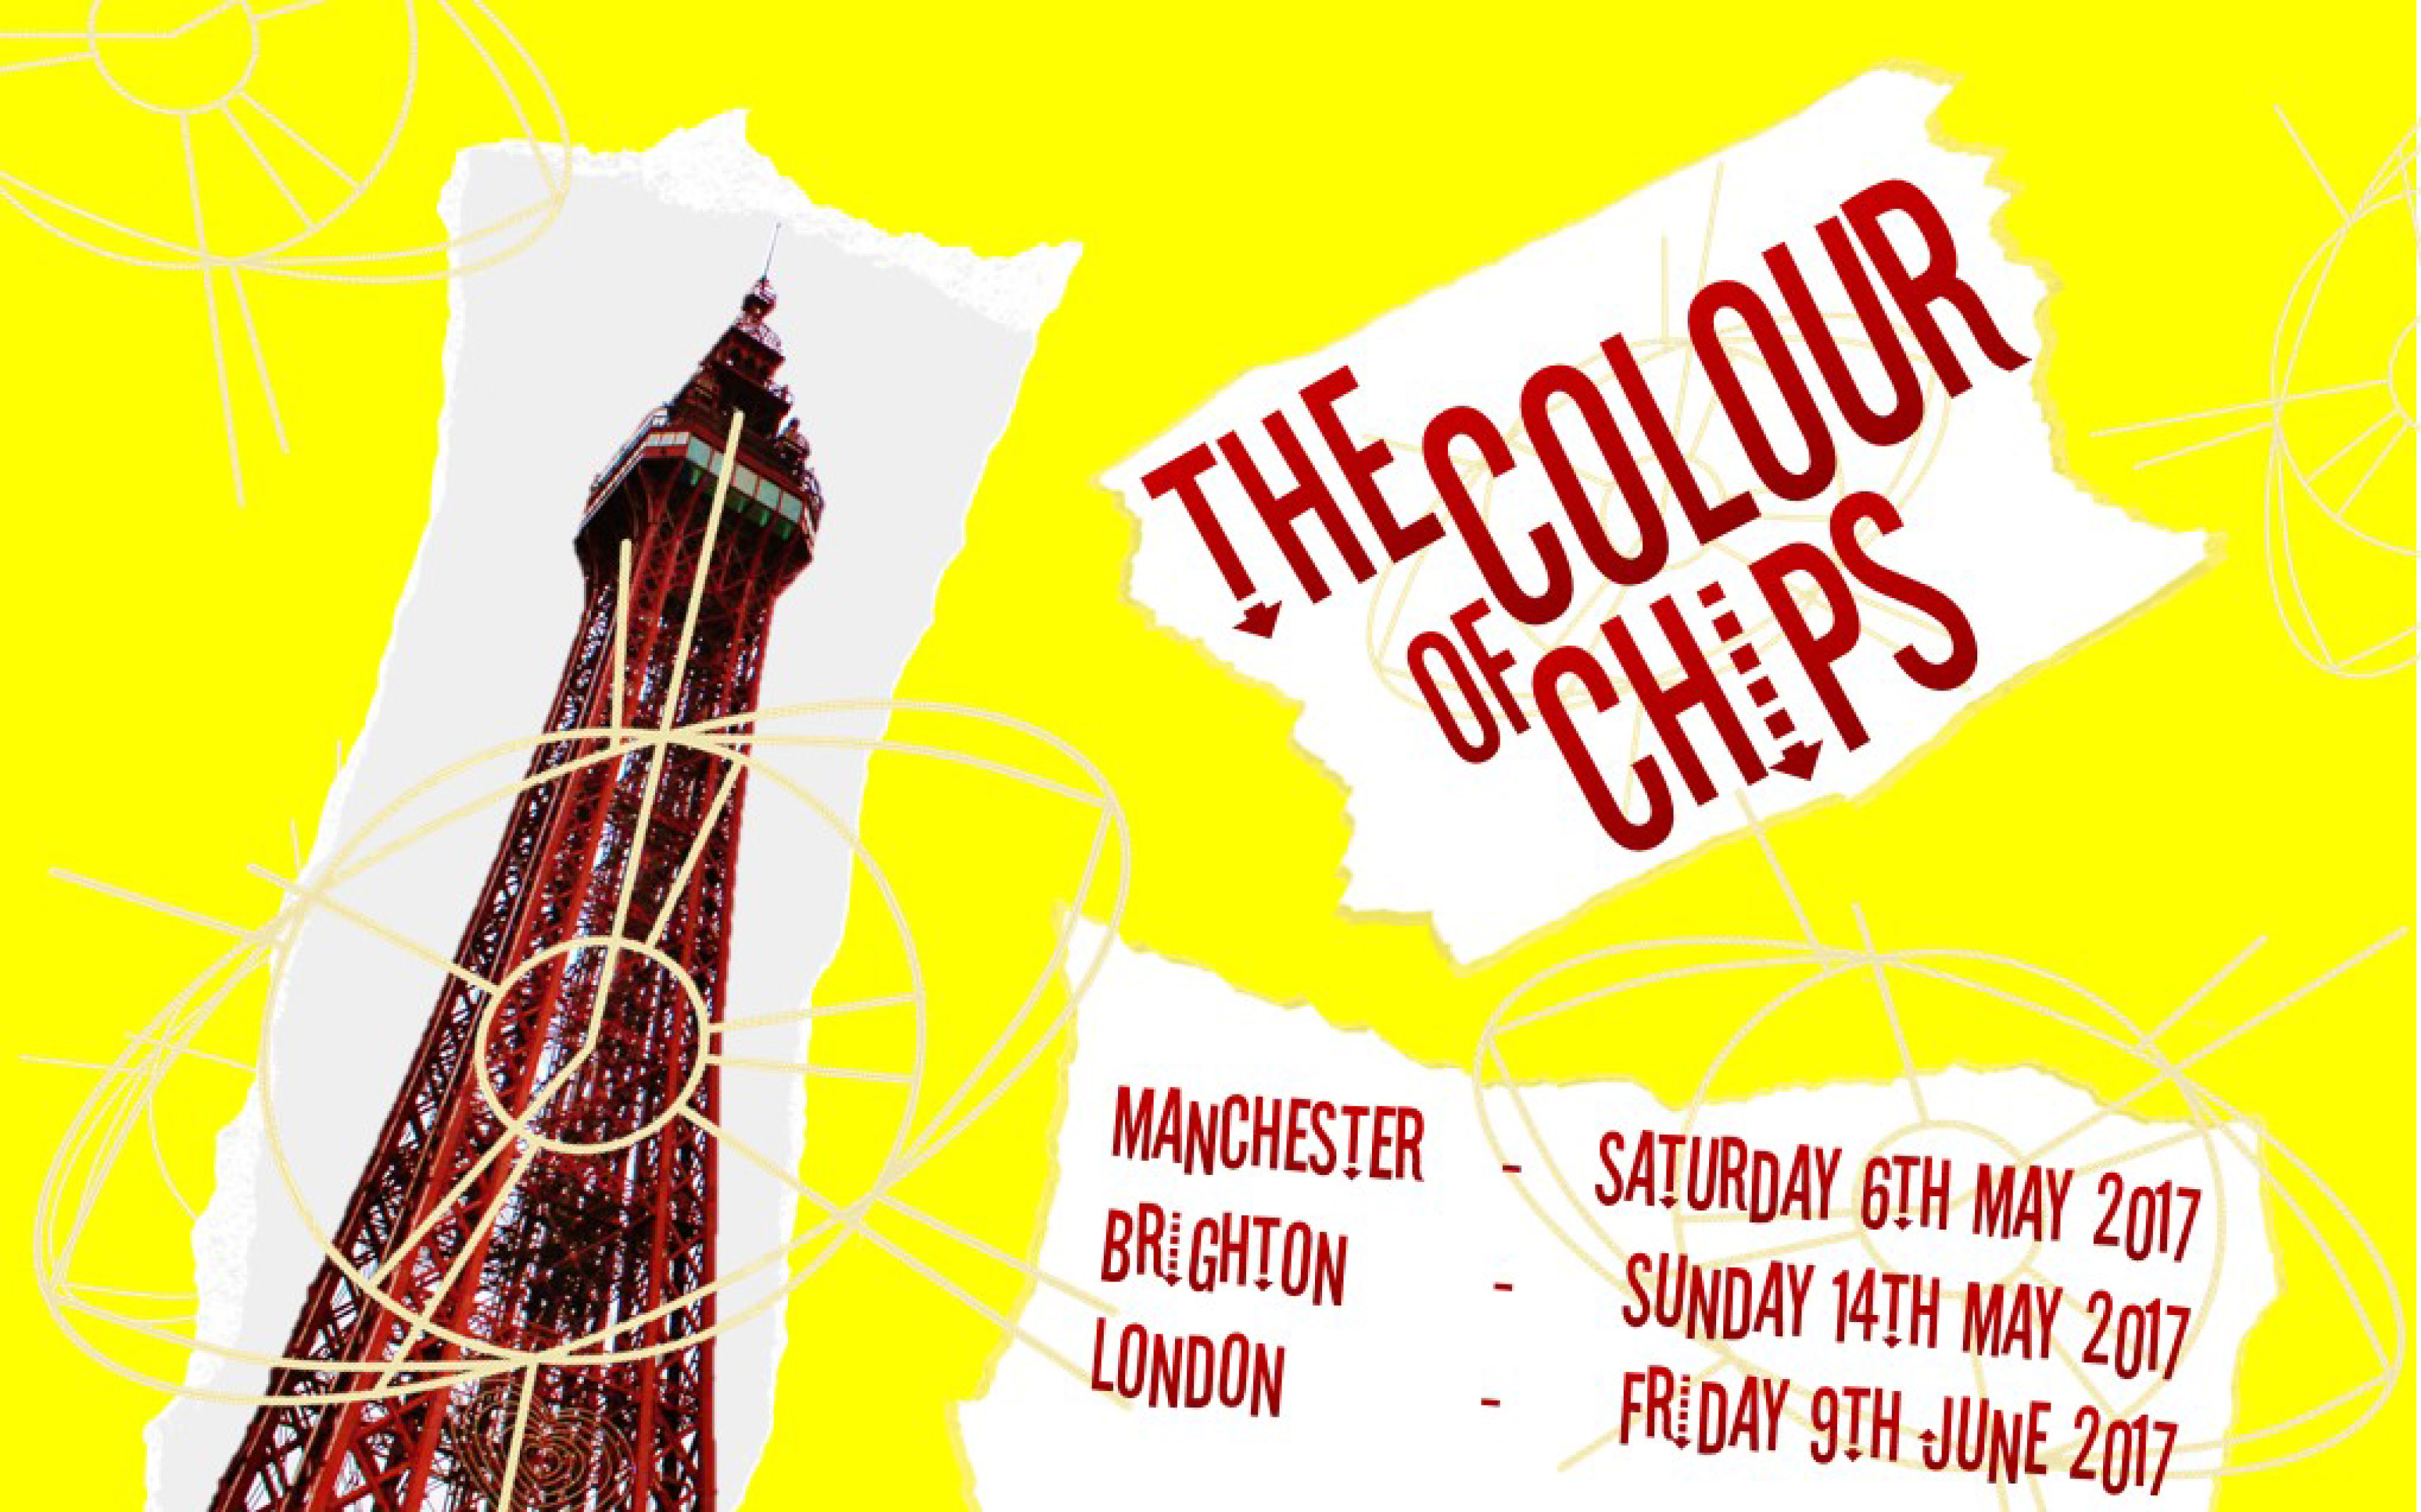 2 colour poster design - The Colour Of Chips Imagined Film Poster Copyright Sophie Goodman